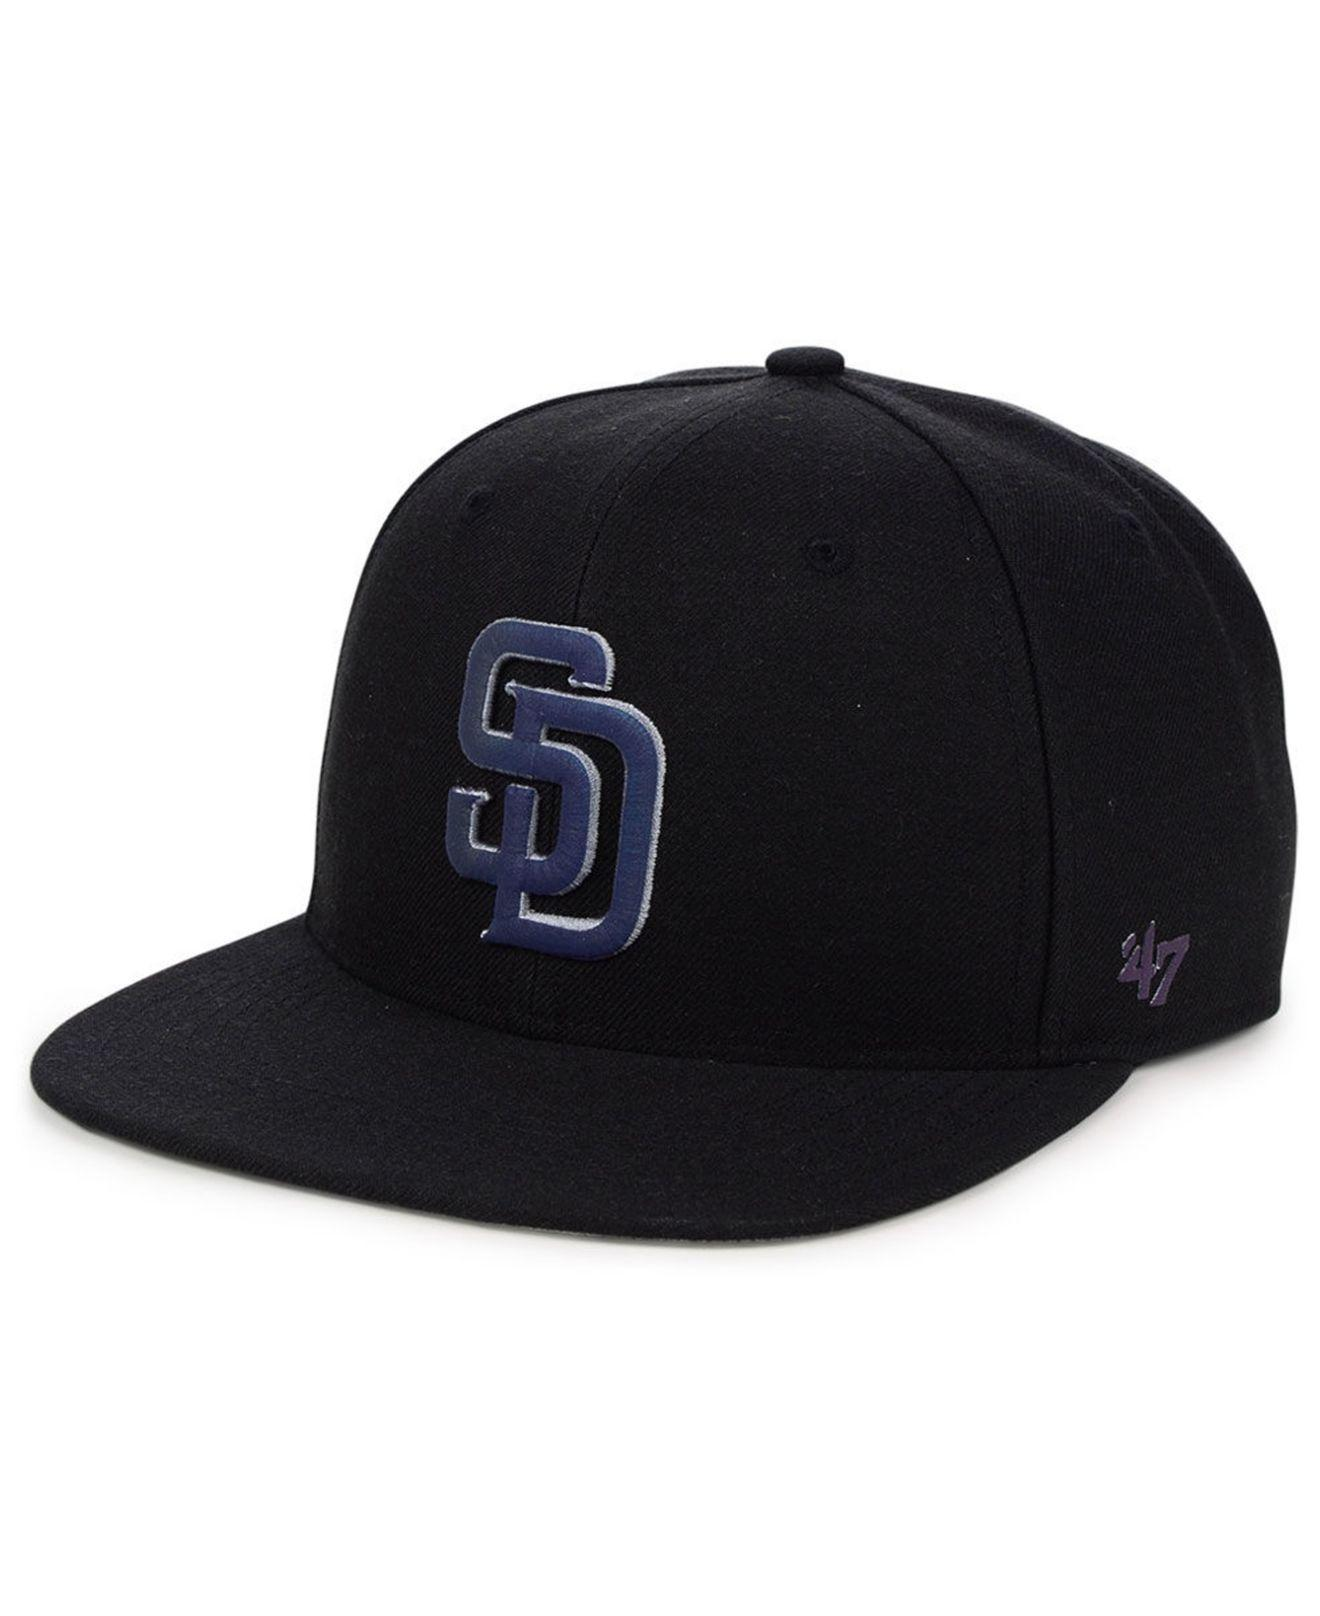 outlet store 2e9e3 a5715 47 Brand San Diego Padres Iridescent Snapback Cap in Black for Men ...